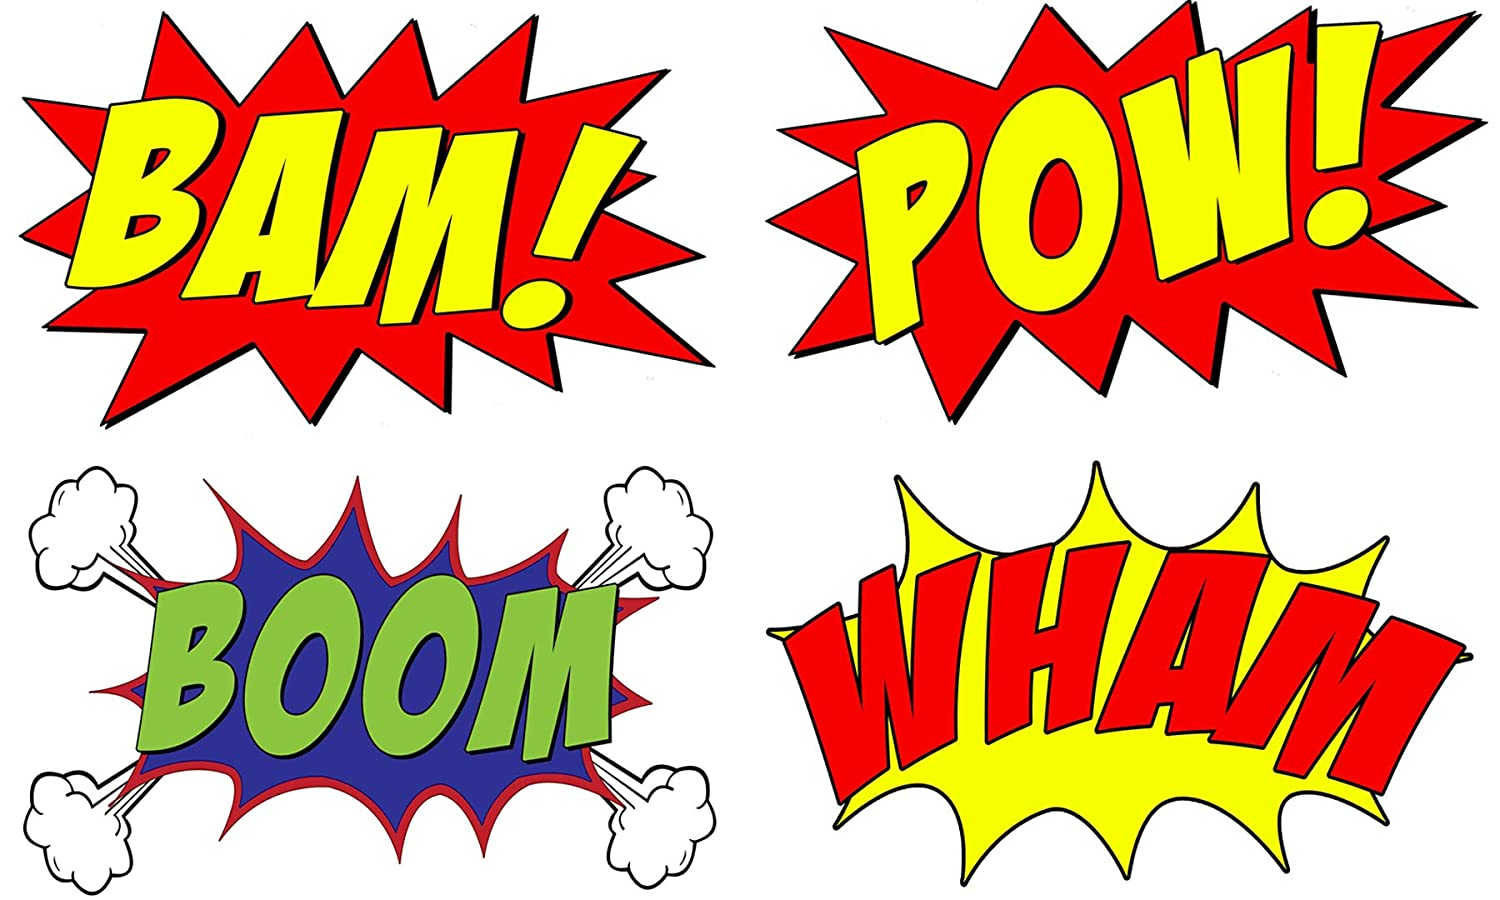 Vwaq comic book set of 4 wall decal sound effects comic book bam pow boom wham pack of superhero vinyl wall art peel and stick stickers cb5 10 h x 16 w